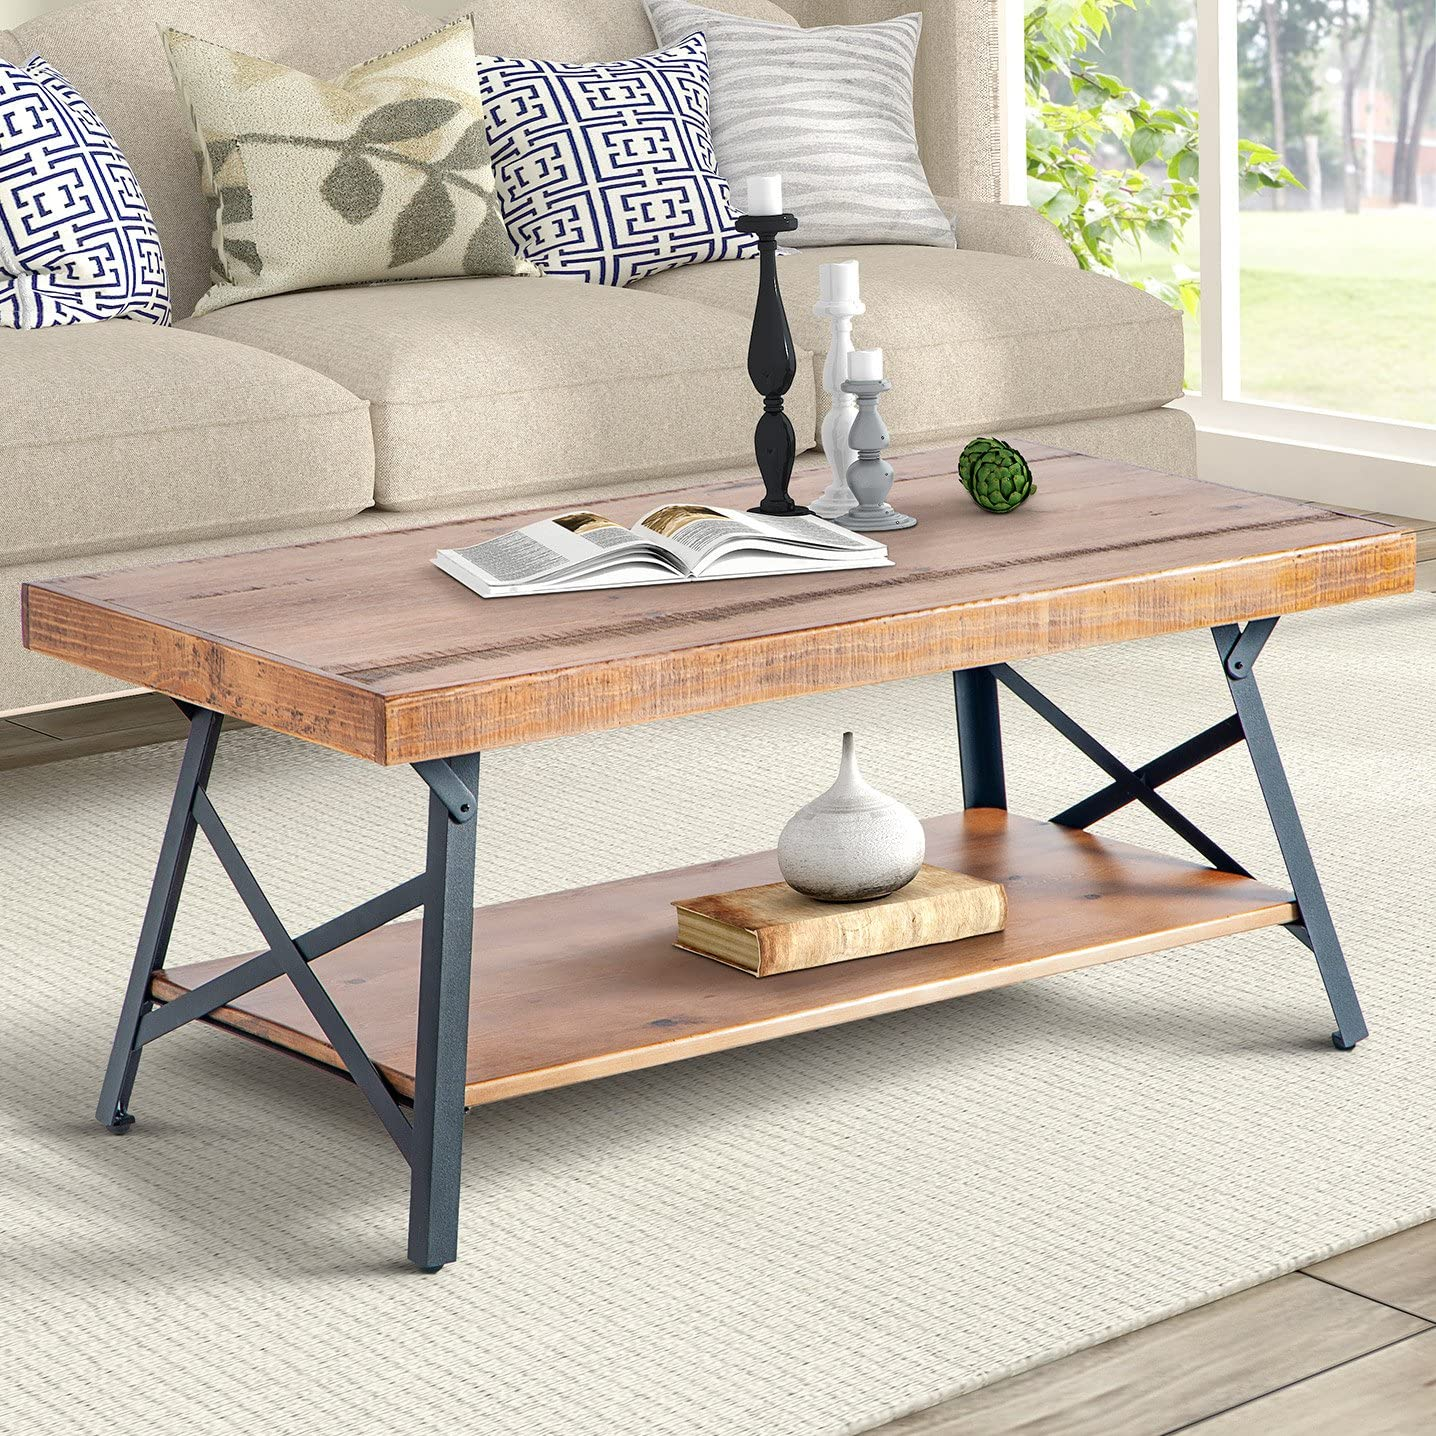 Harper Bright Designs 43 Lindor Collection Wood Coffee Table with Metal Legs,Living Room Set Rustic Brown, 43.3 L x 21.65 W x 18.34 H